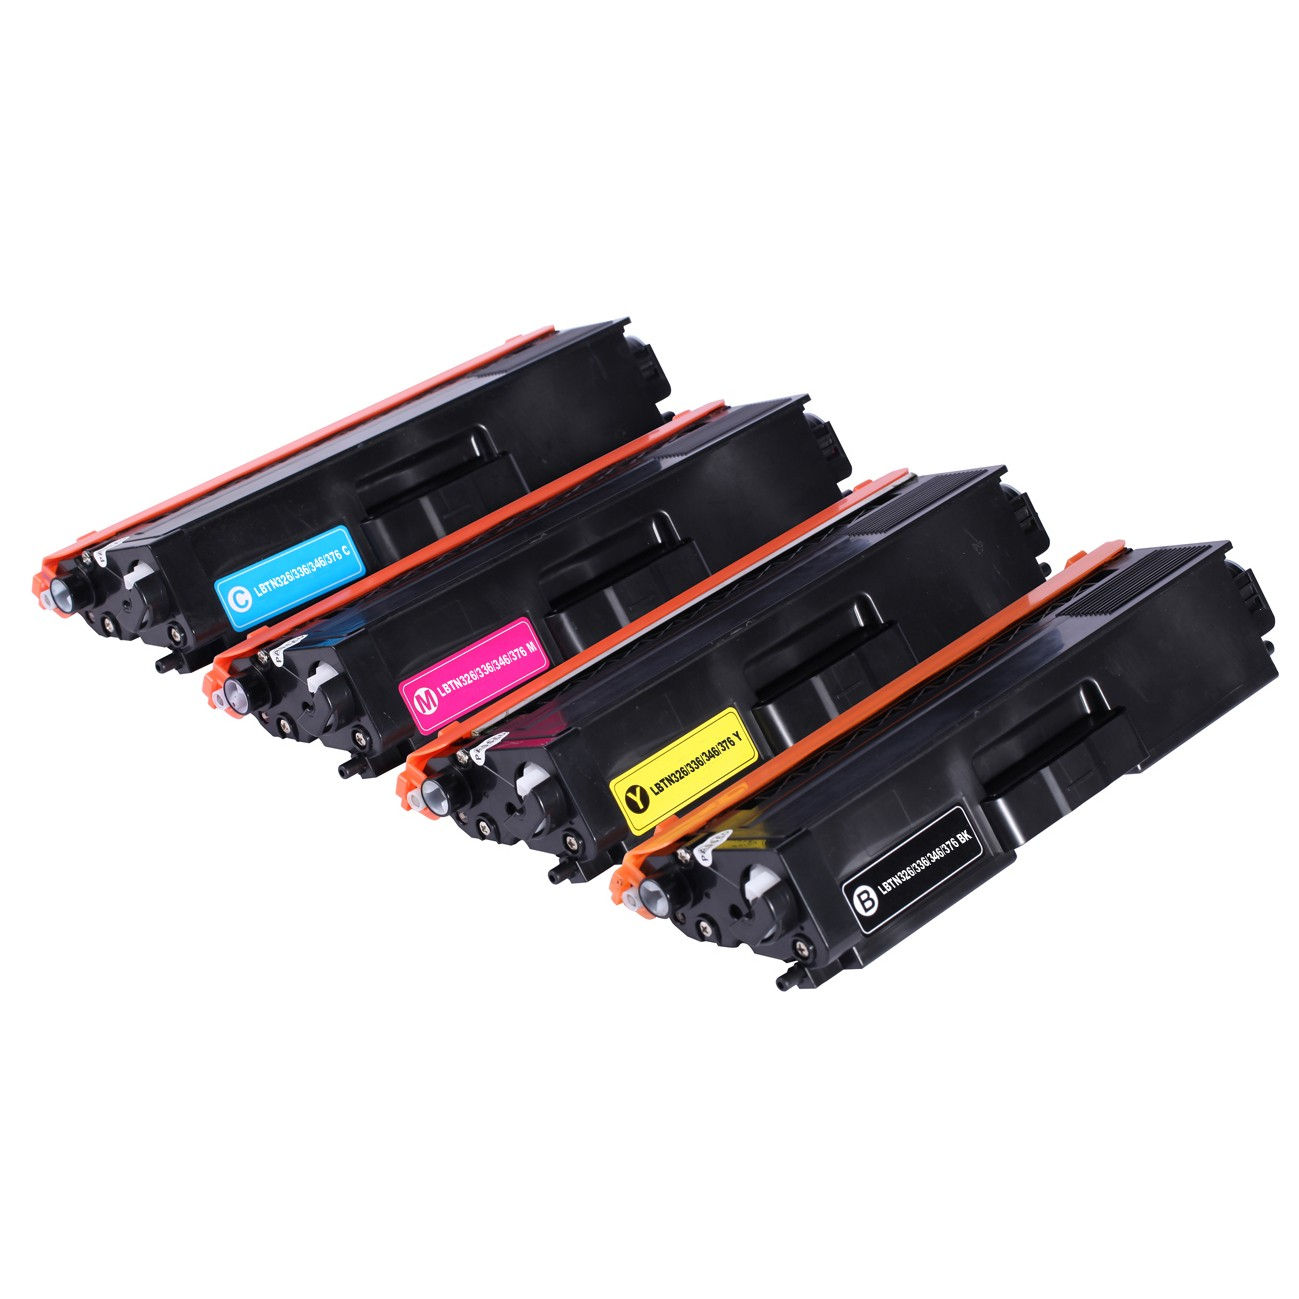 Compatible toner cartridge for Brother TN326/336/346/376 BK/C/M/Y